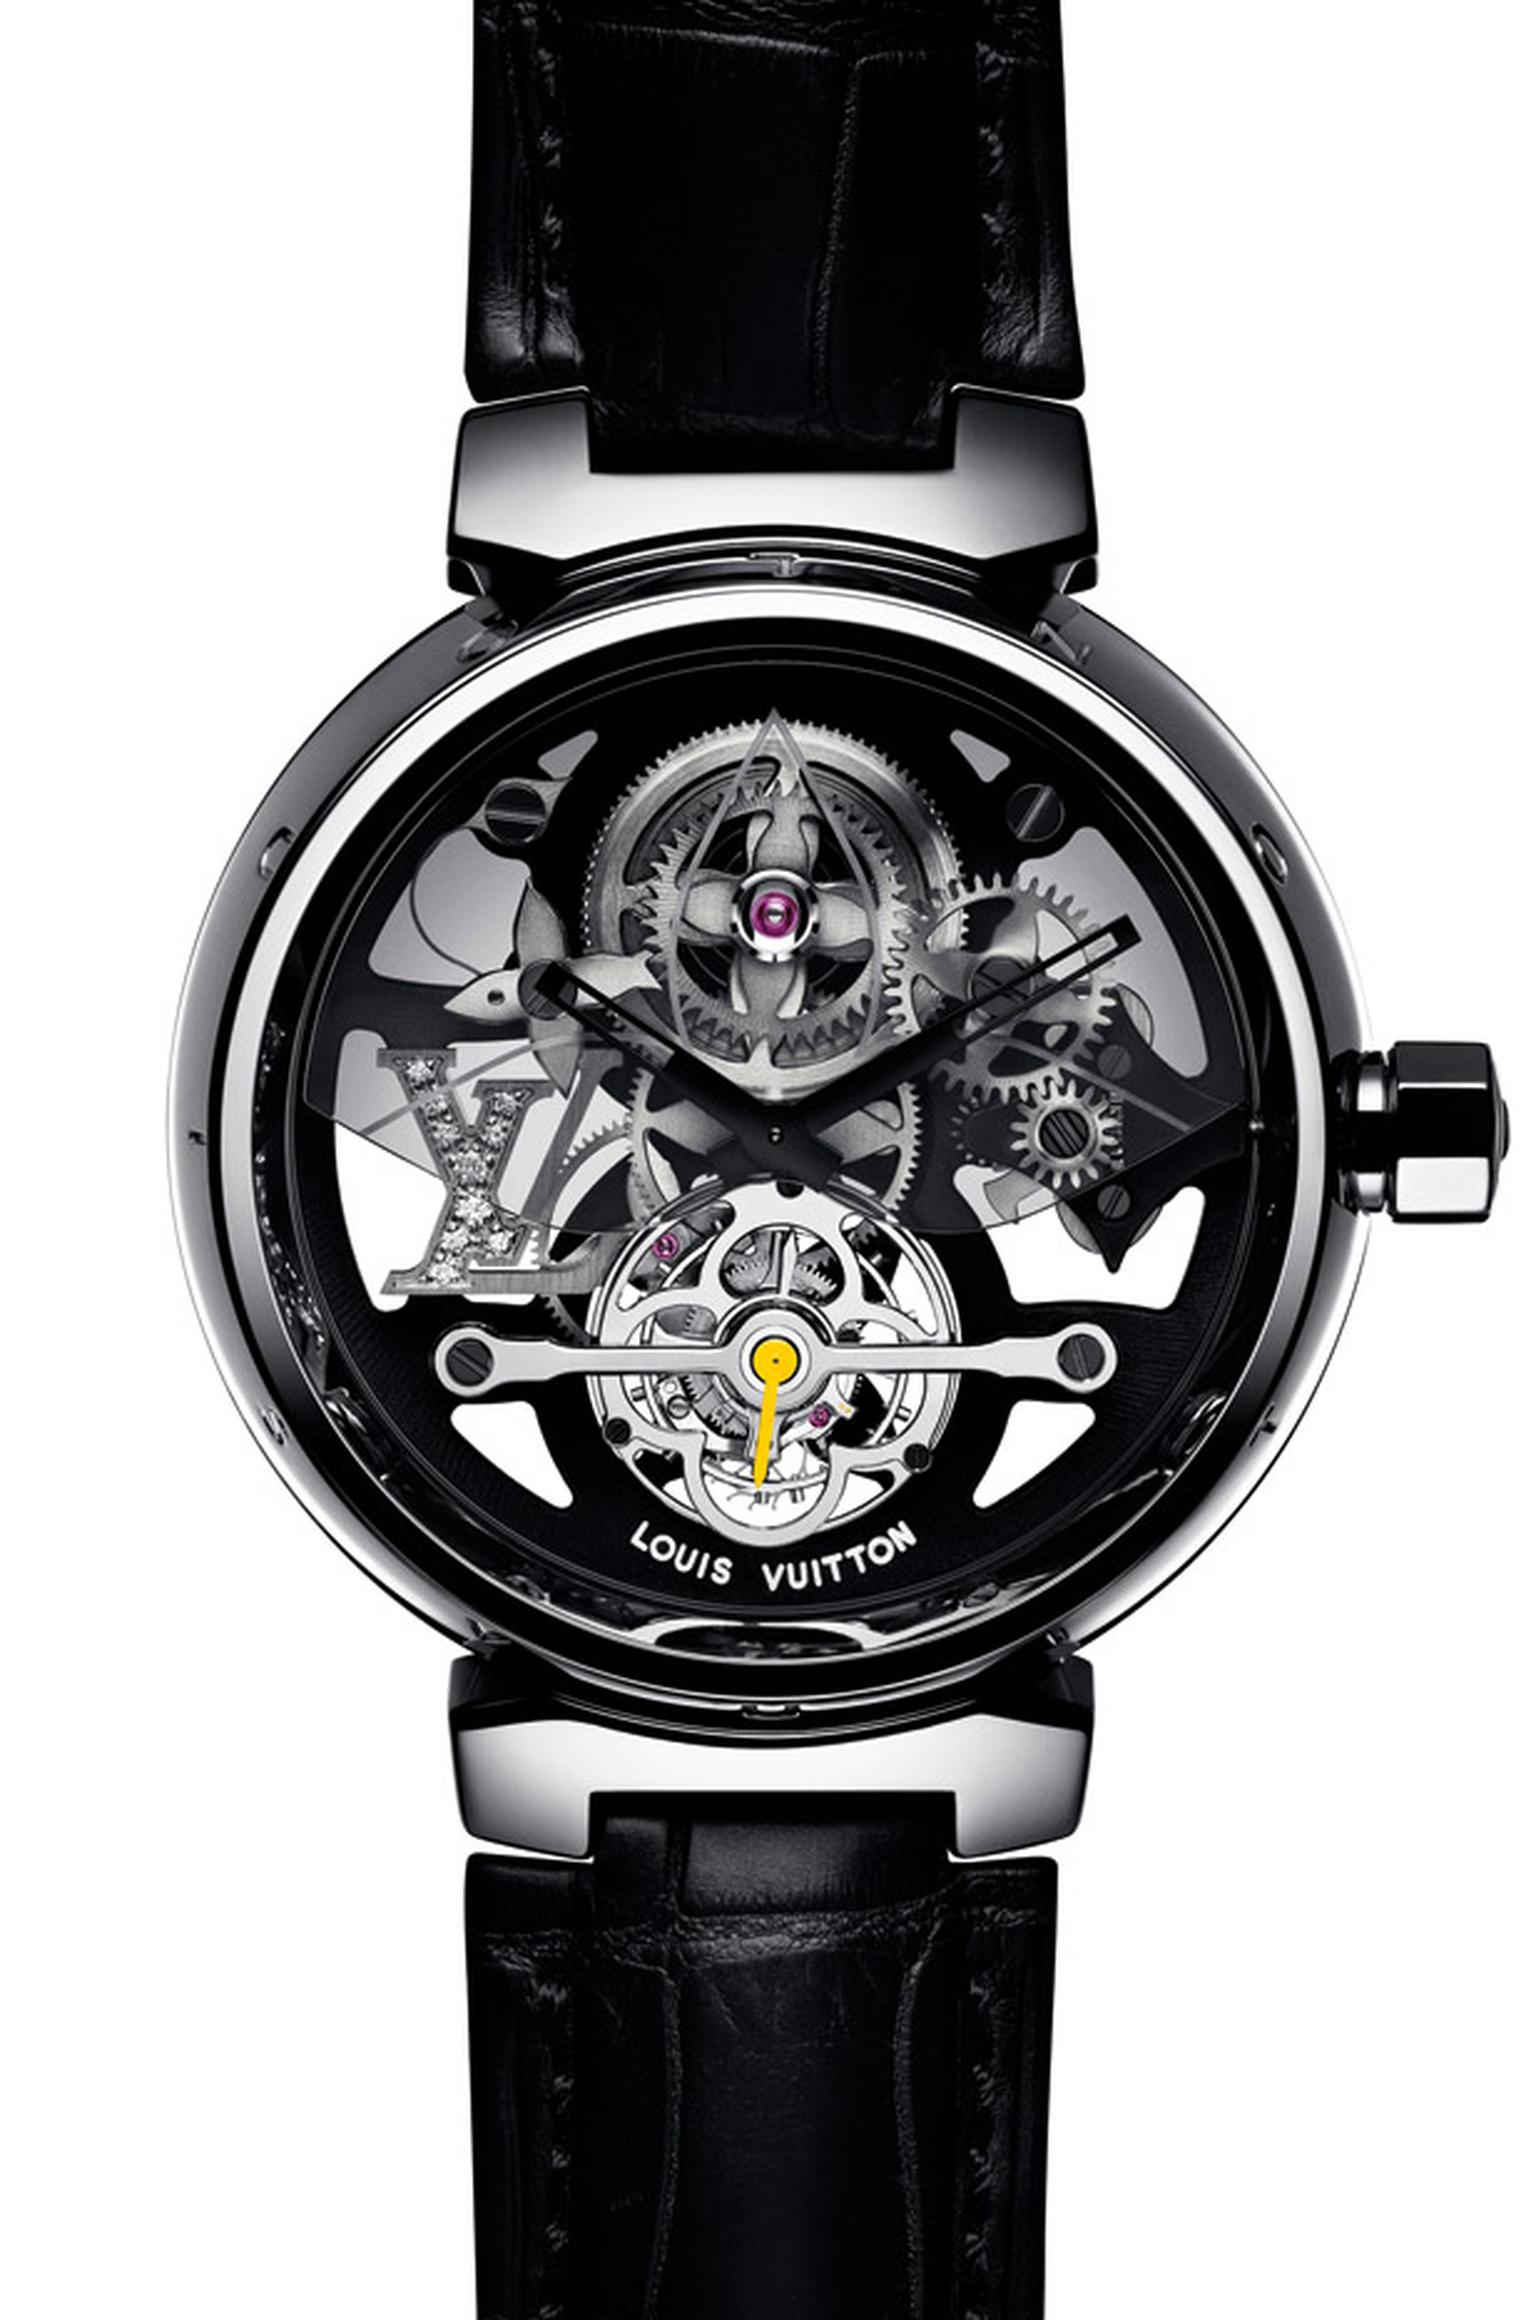 Louis-Vuitton-Tambour-Tourbillon-Or-Blanc.jpg